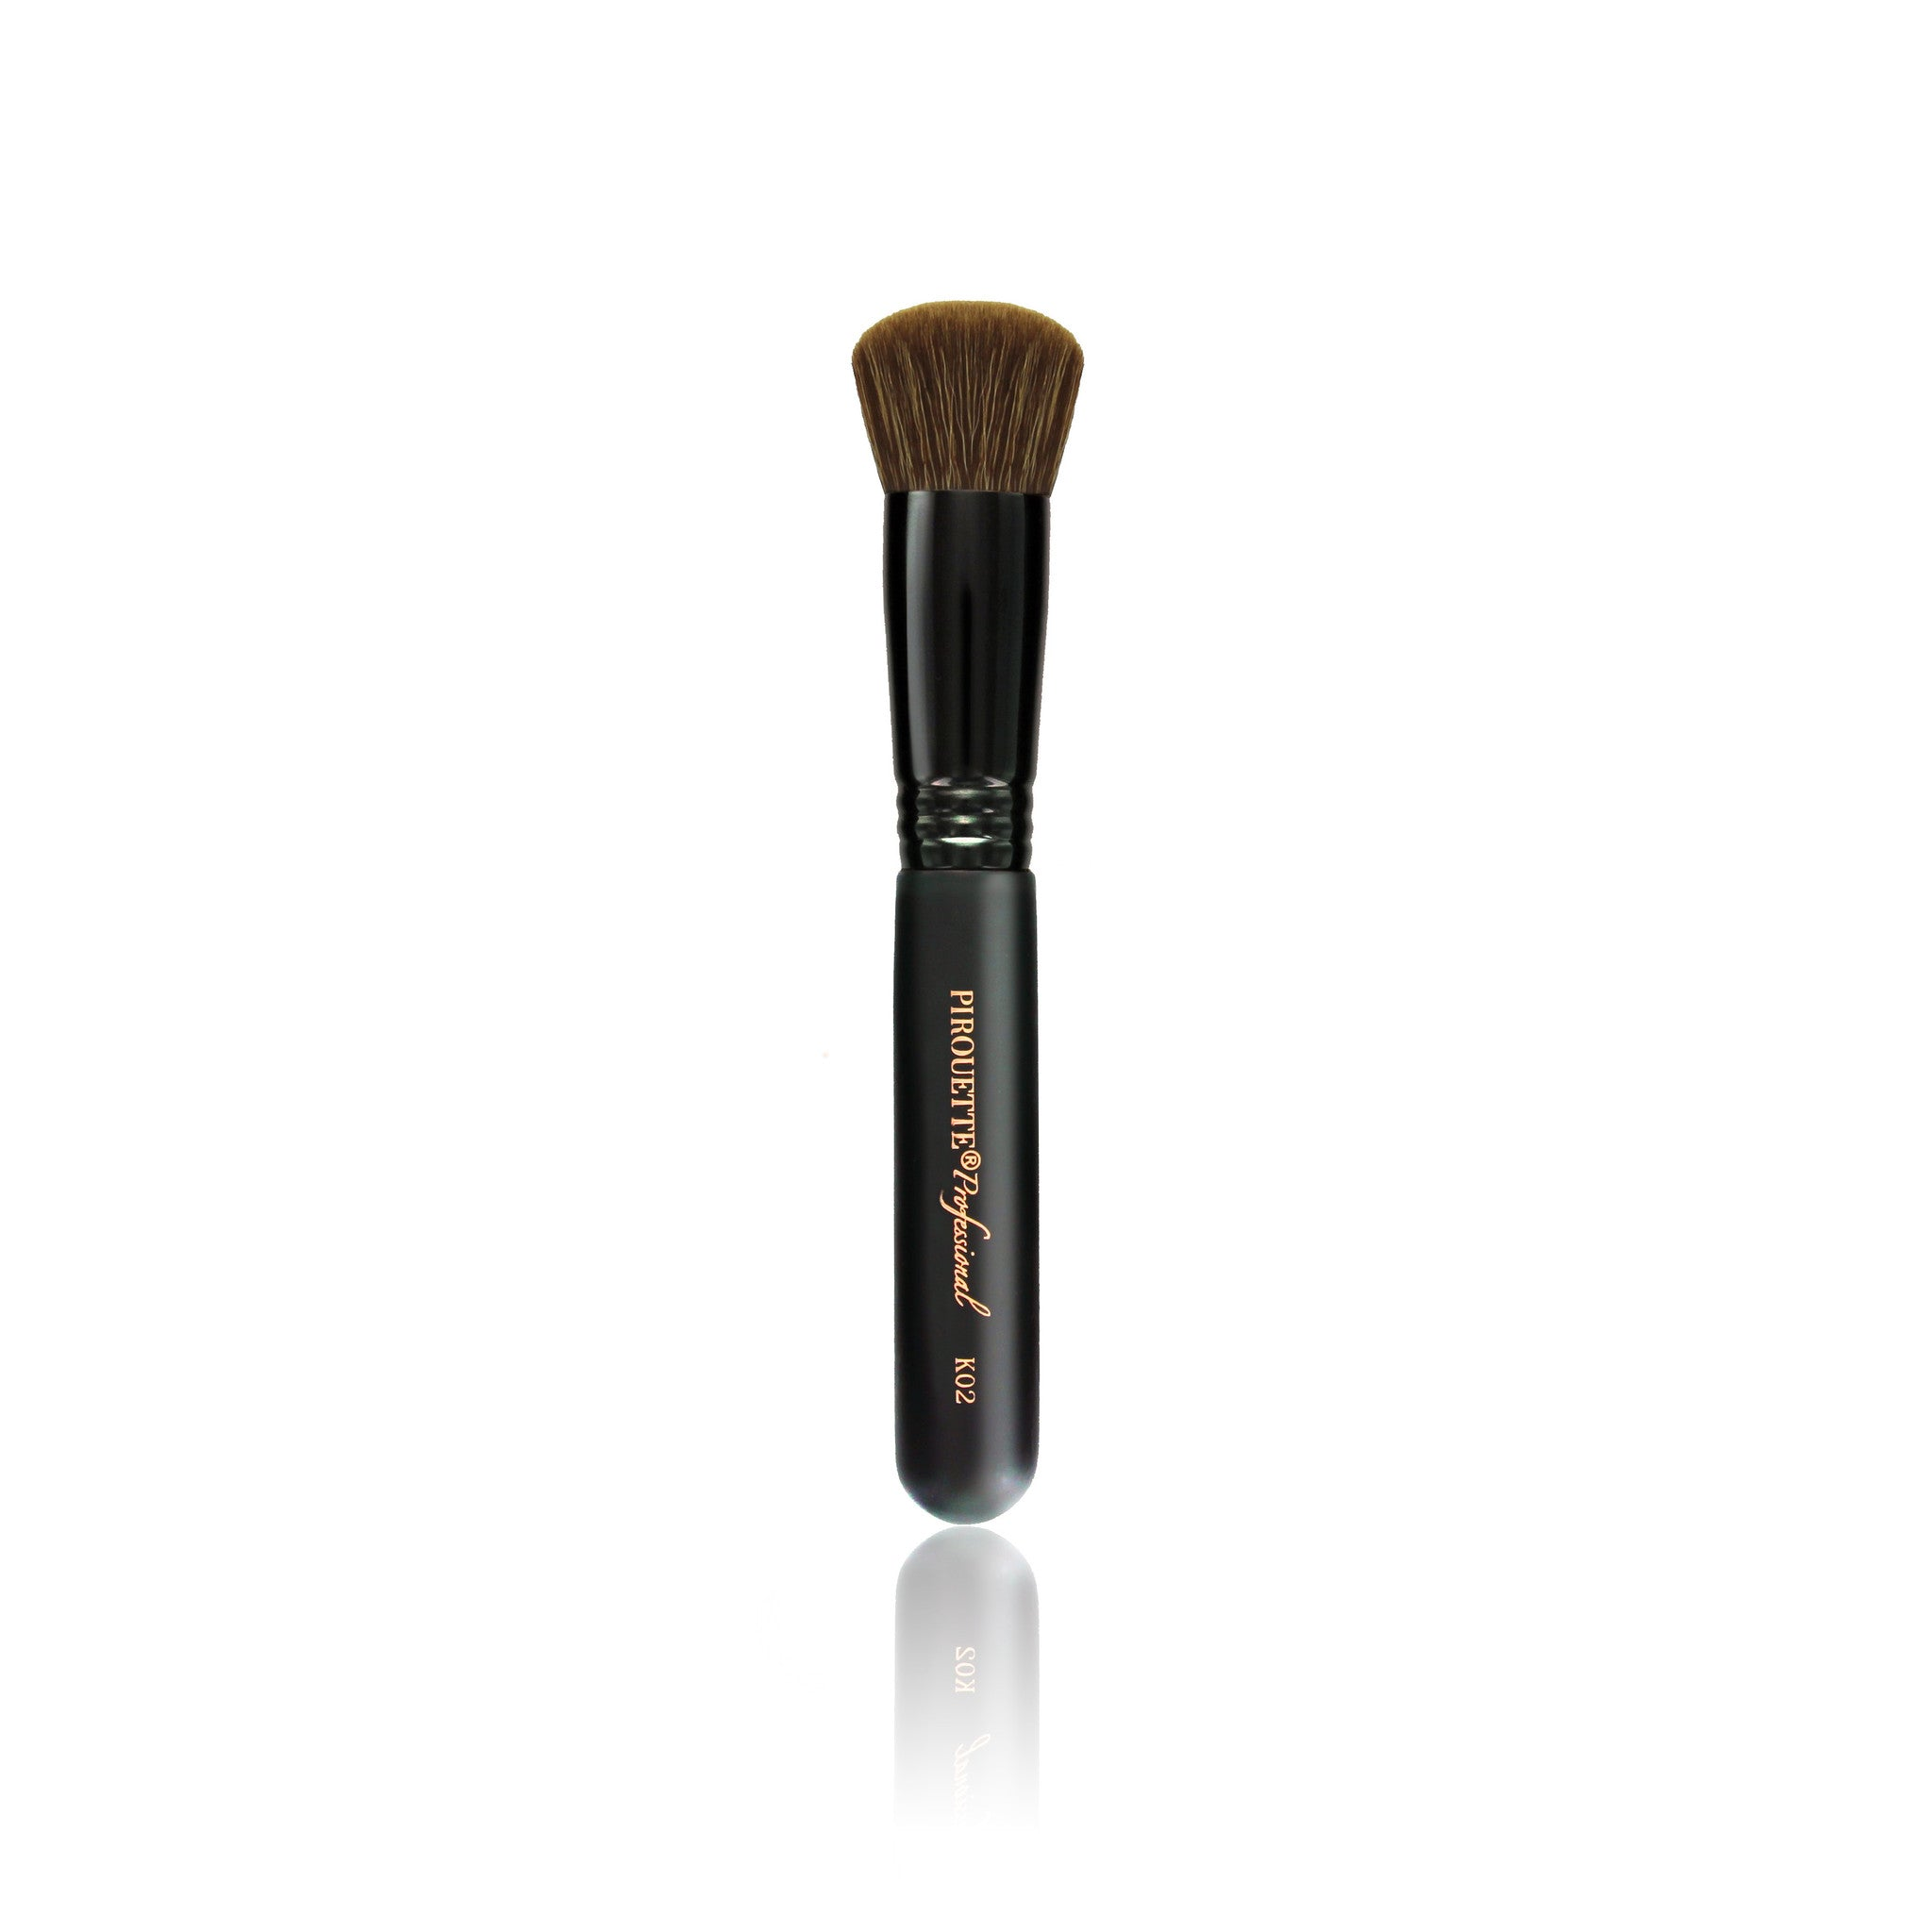 Hakataza Brush K02